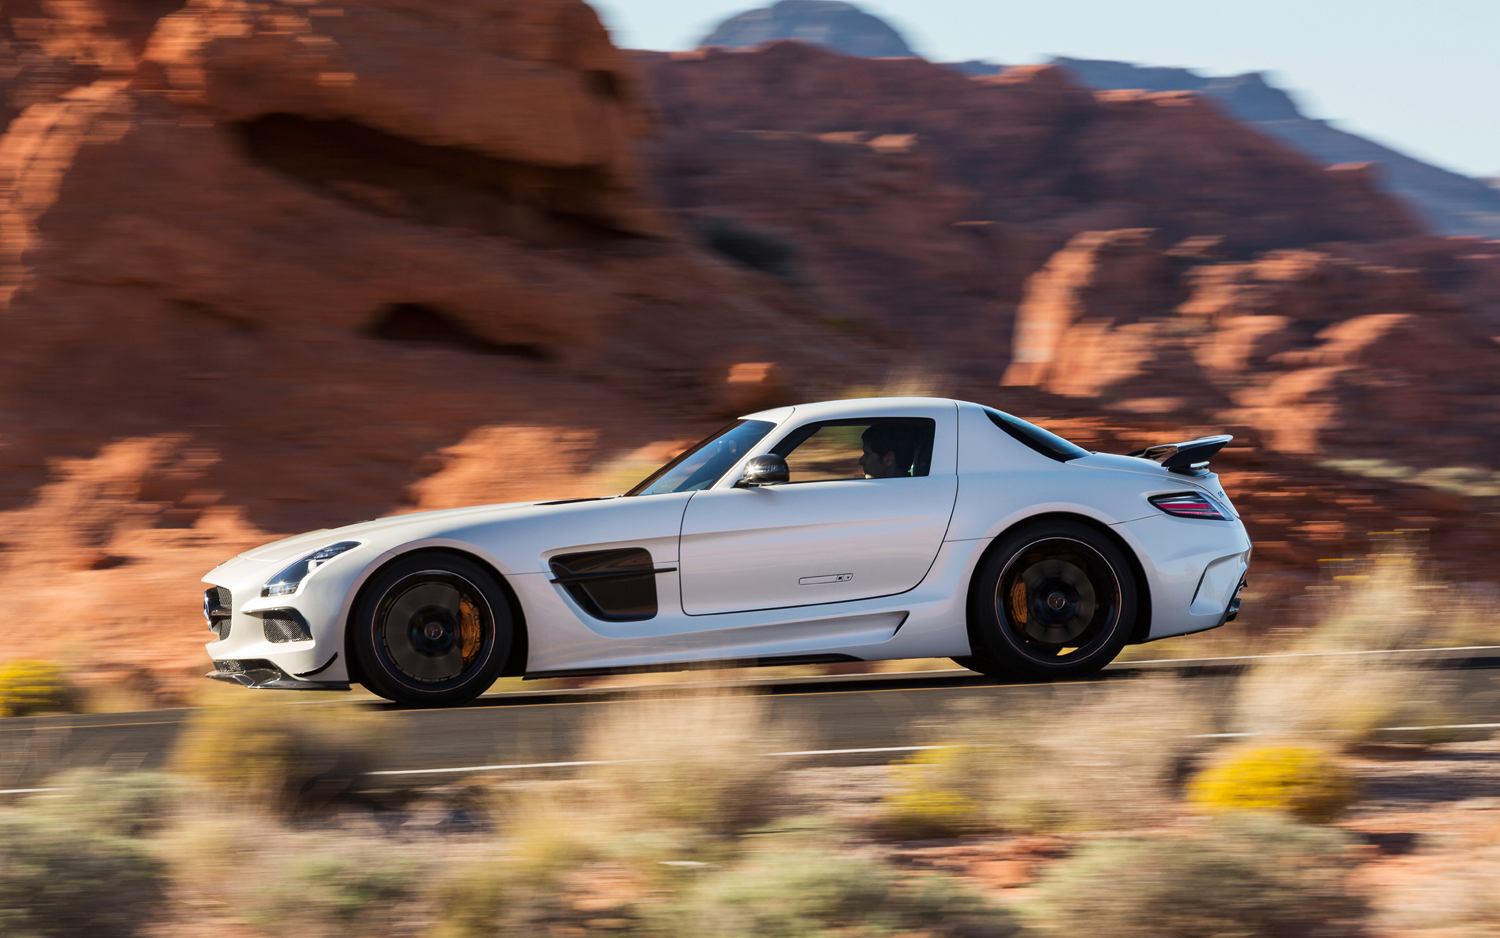 2014-Mercedes-Benz-SLS-AMG-Black-Series-side-in-motion-2